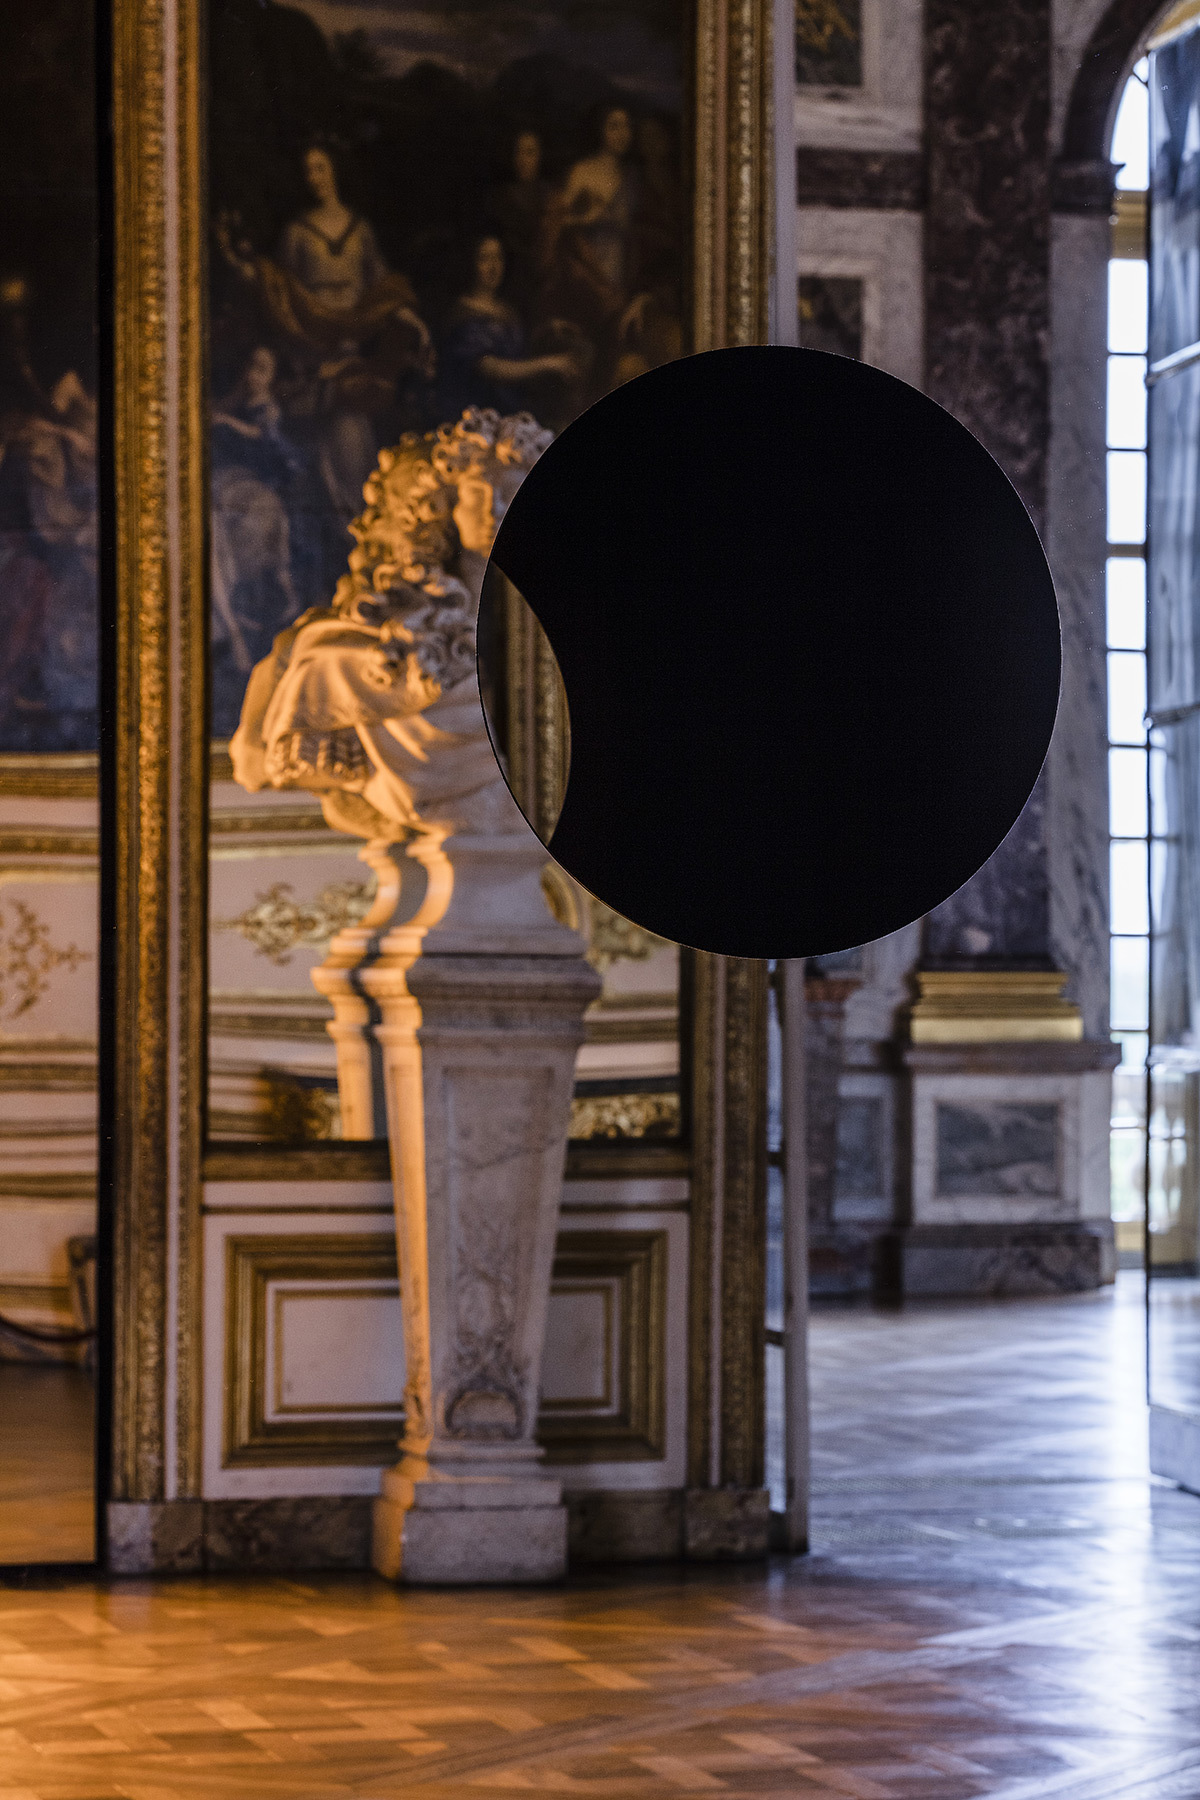 Olafur Eliasson, Deep mirror black, 2016 - Château de Versailles, France - Photo : Anders Sune Berg